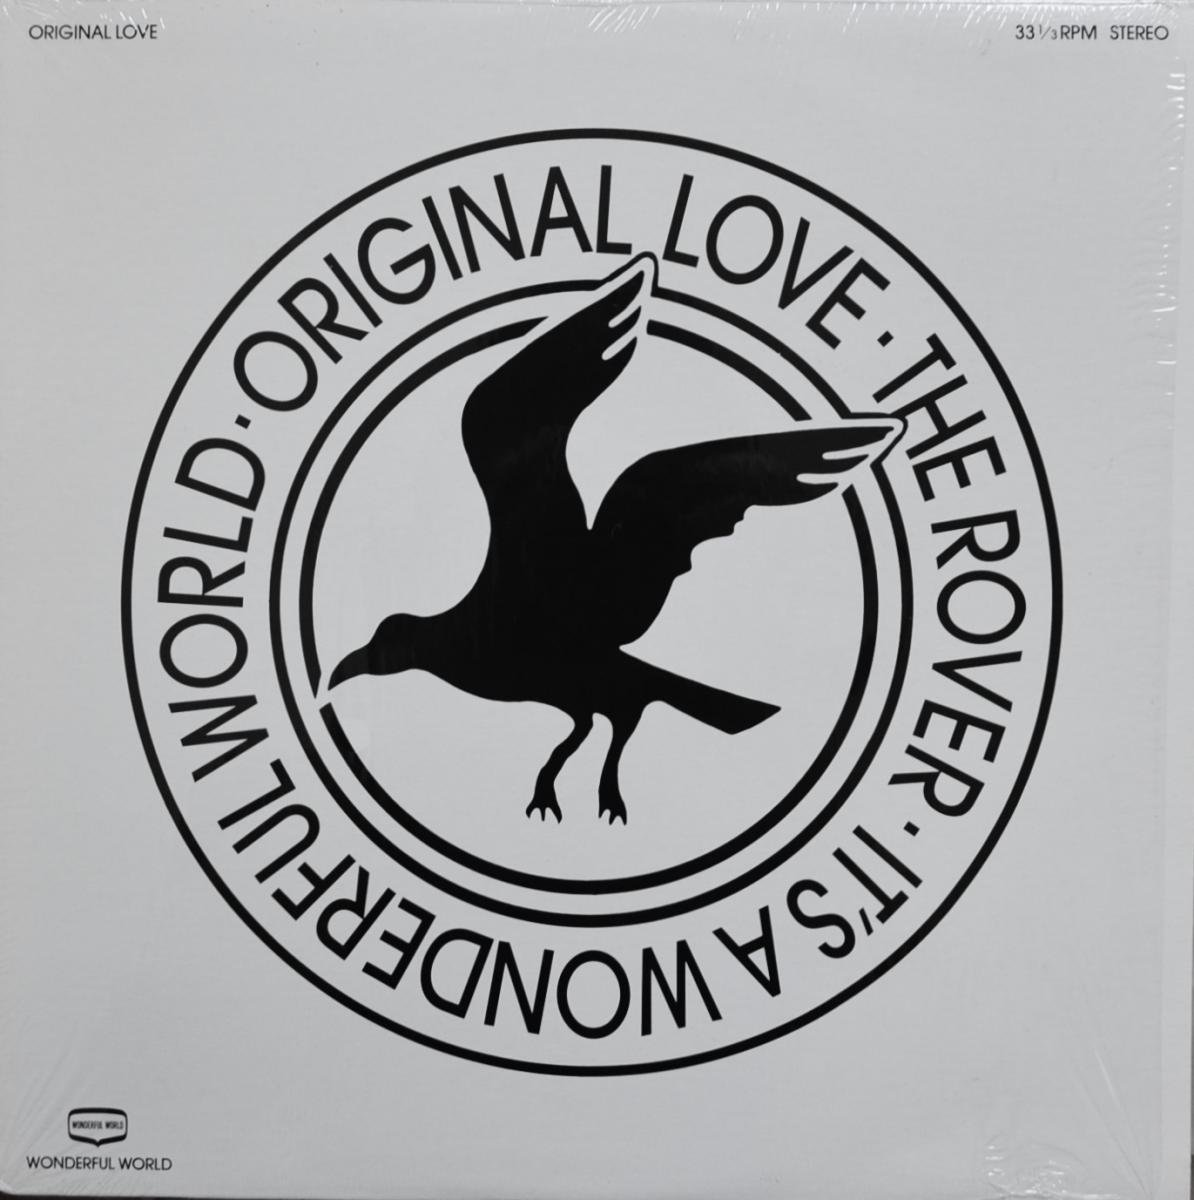 オリジナル・ラブ ORIGINAL LOVE / THE ROVER / IT'S A WONDERFUL WORLD-REMIX (12